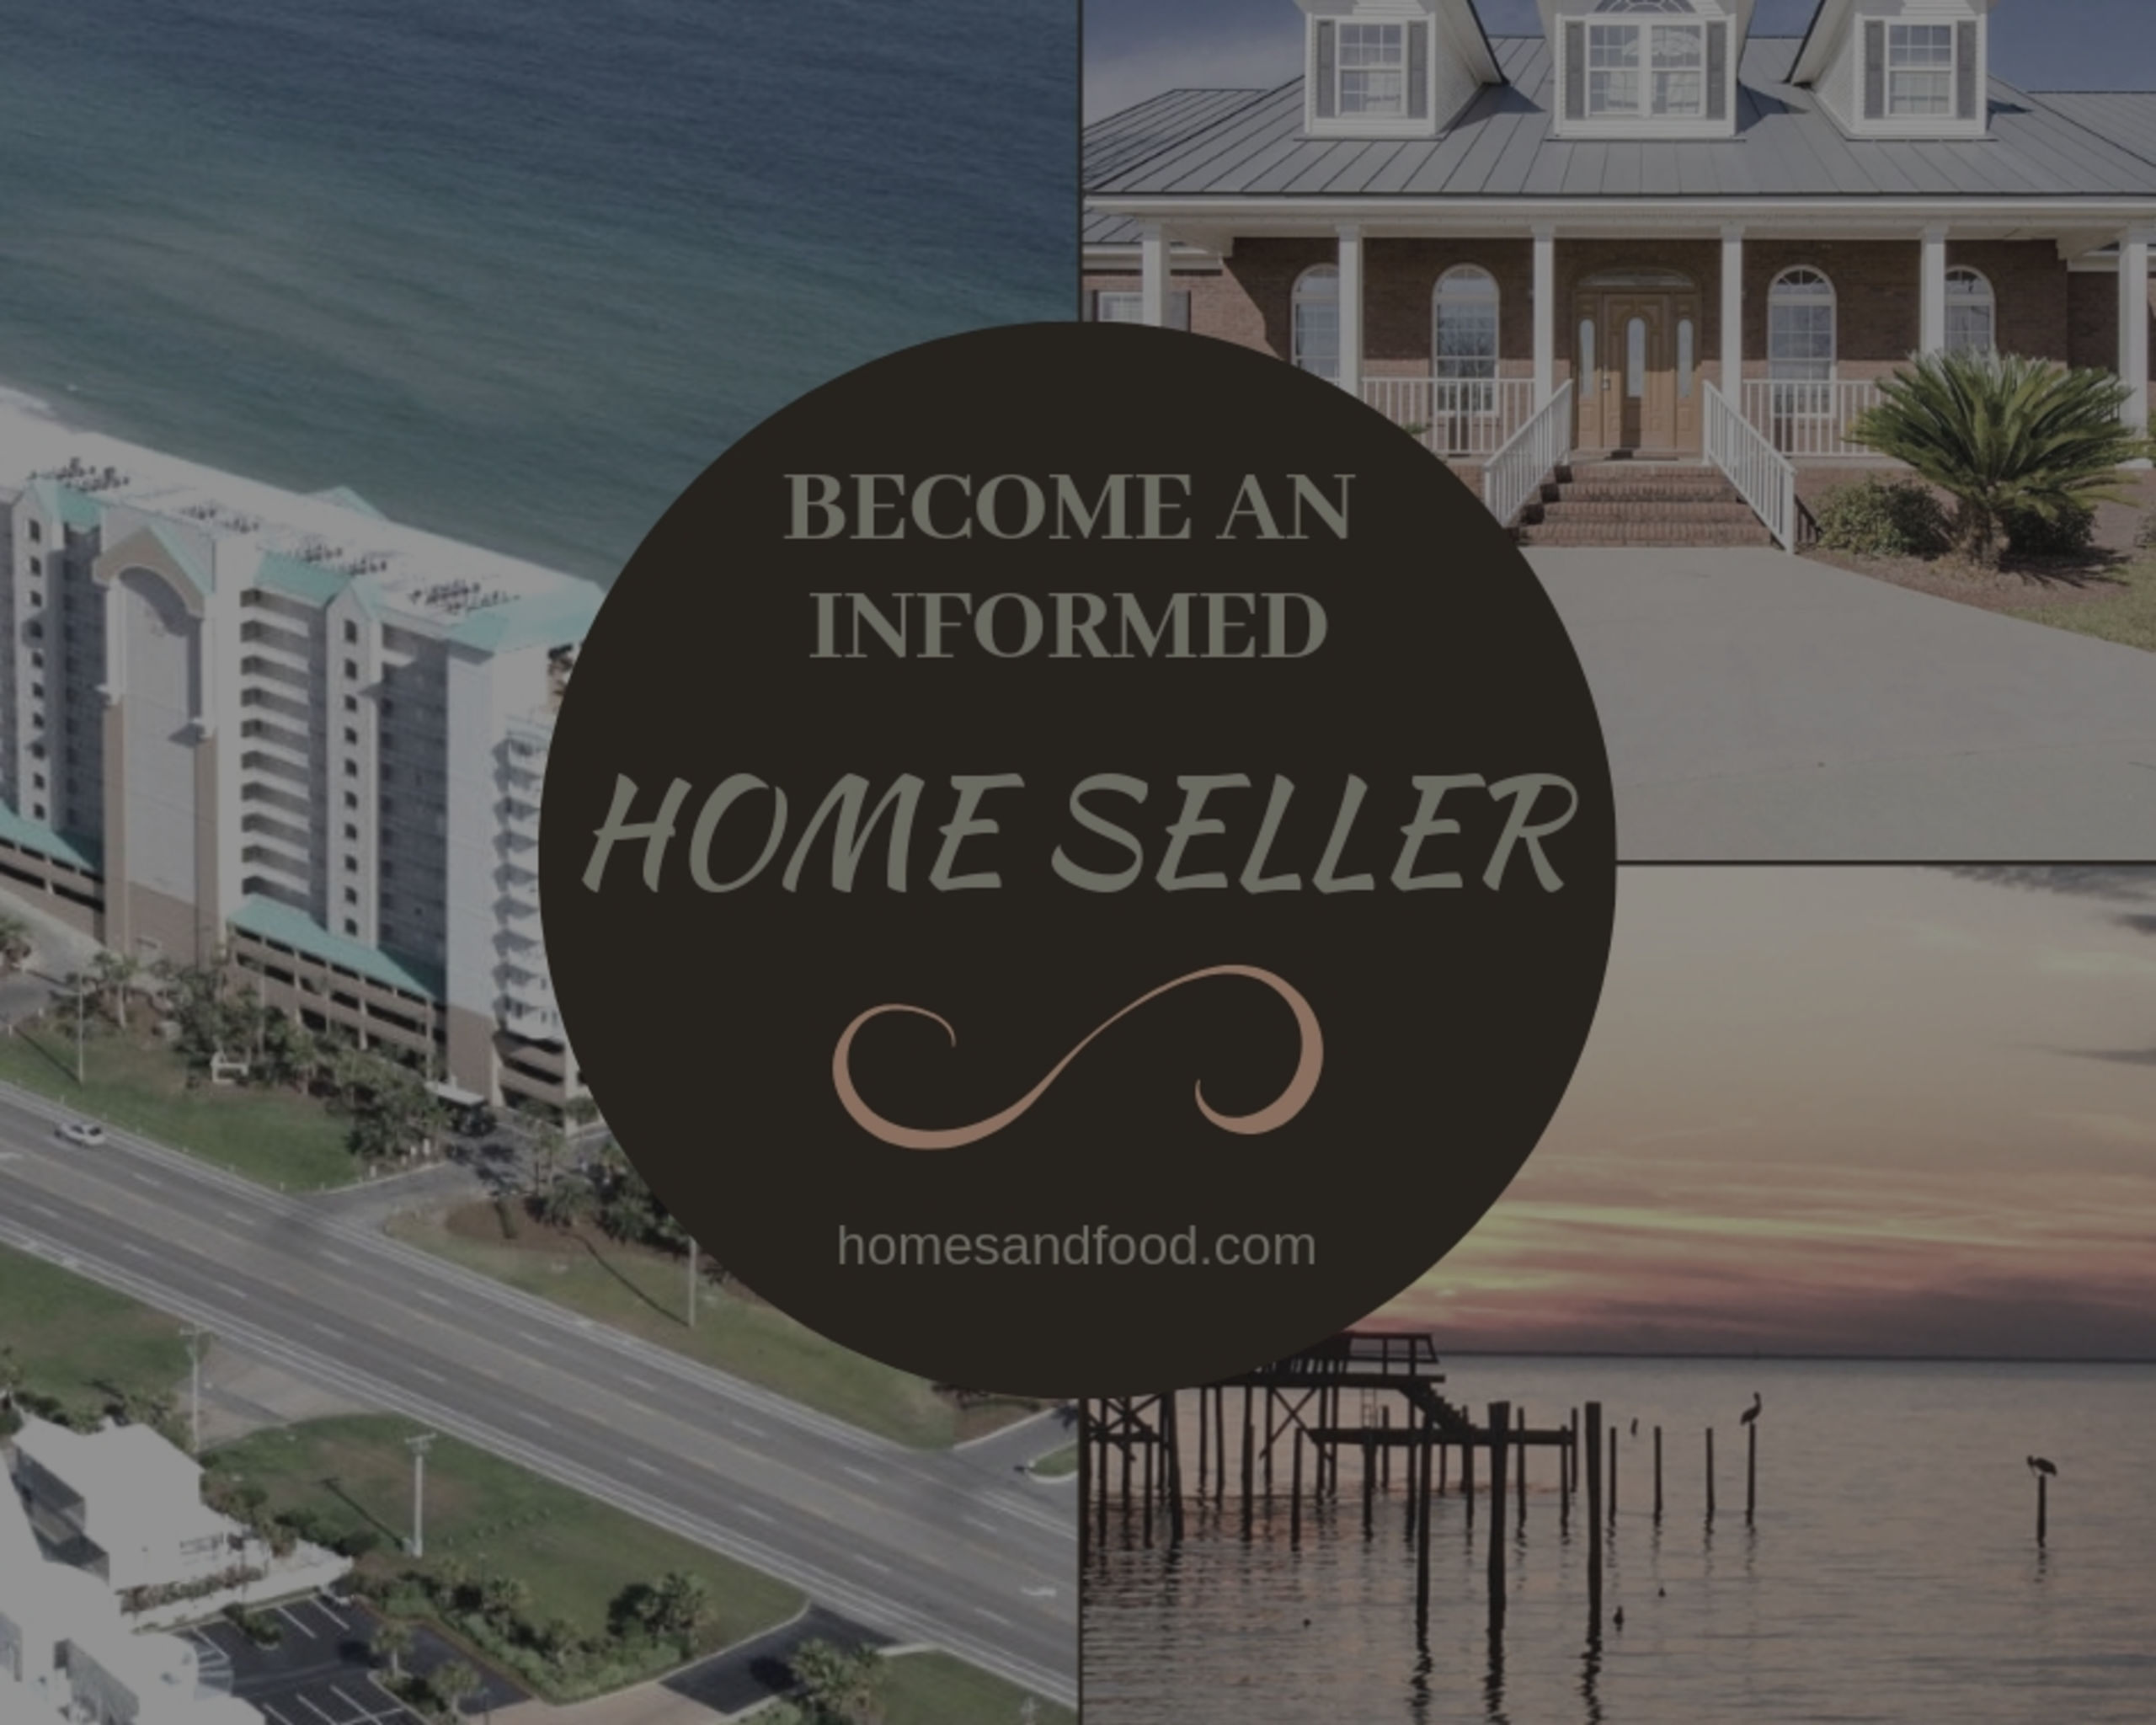 Become an Informed Home Seller